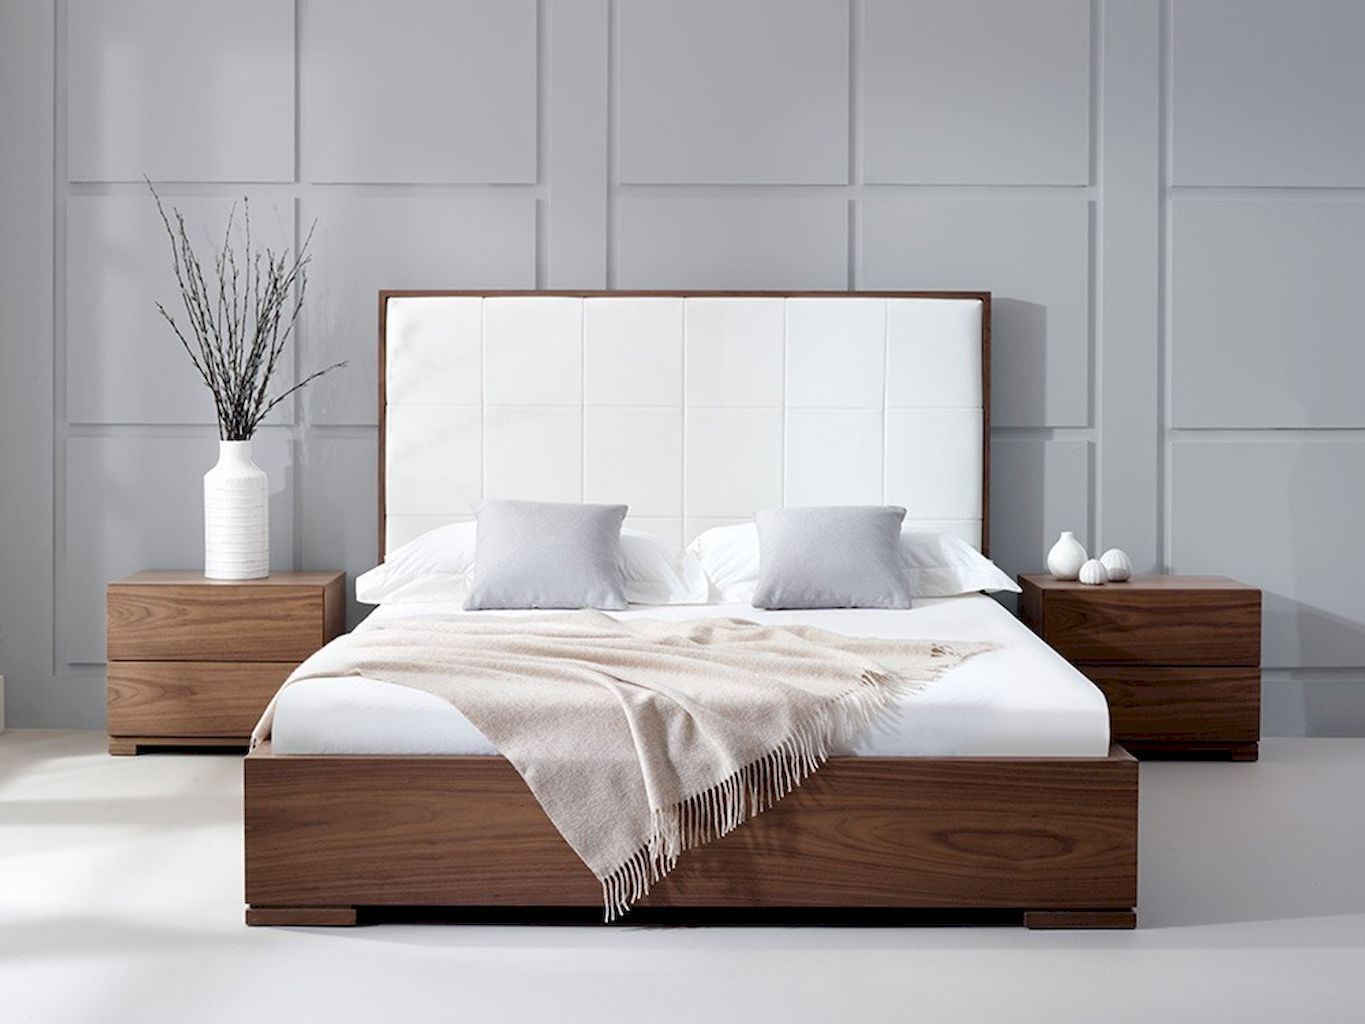 Gorgeous 80 Modern Scandinavian Bedroom Designs Https Wholiving Com 80 Modern Scandina Bedroom Bed Design Contemporary Bed Modern Scandinavian Bedroom Design